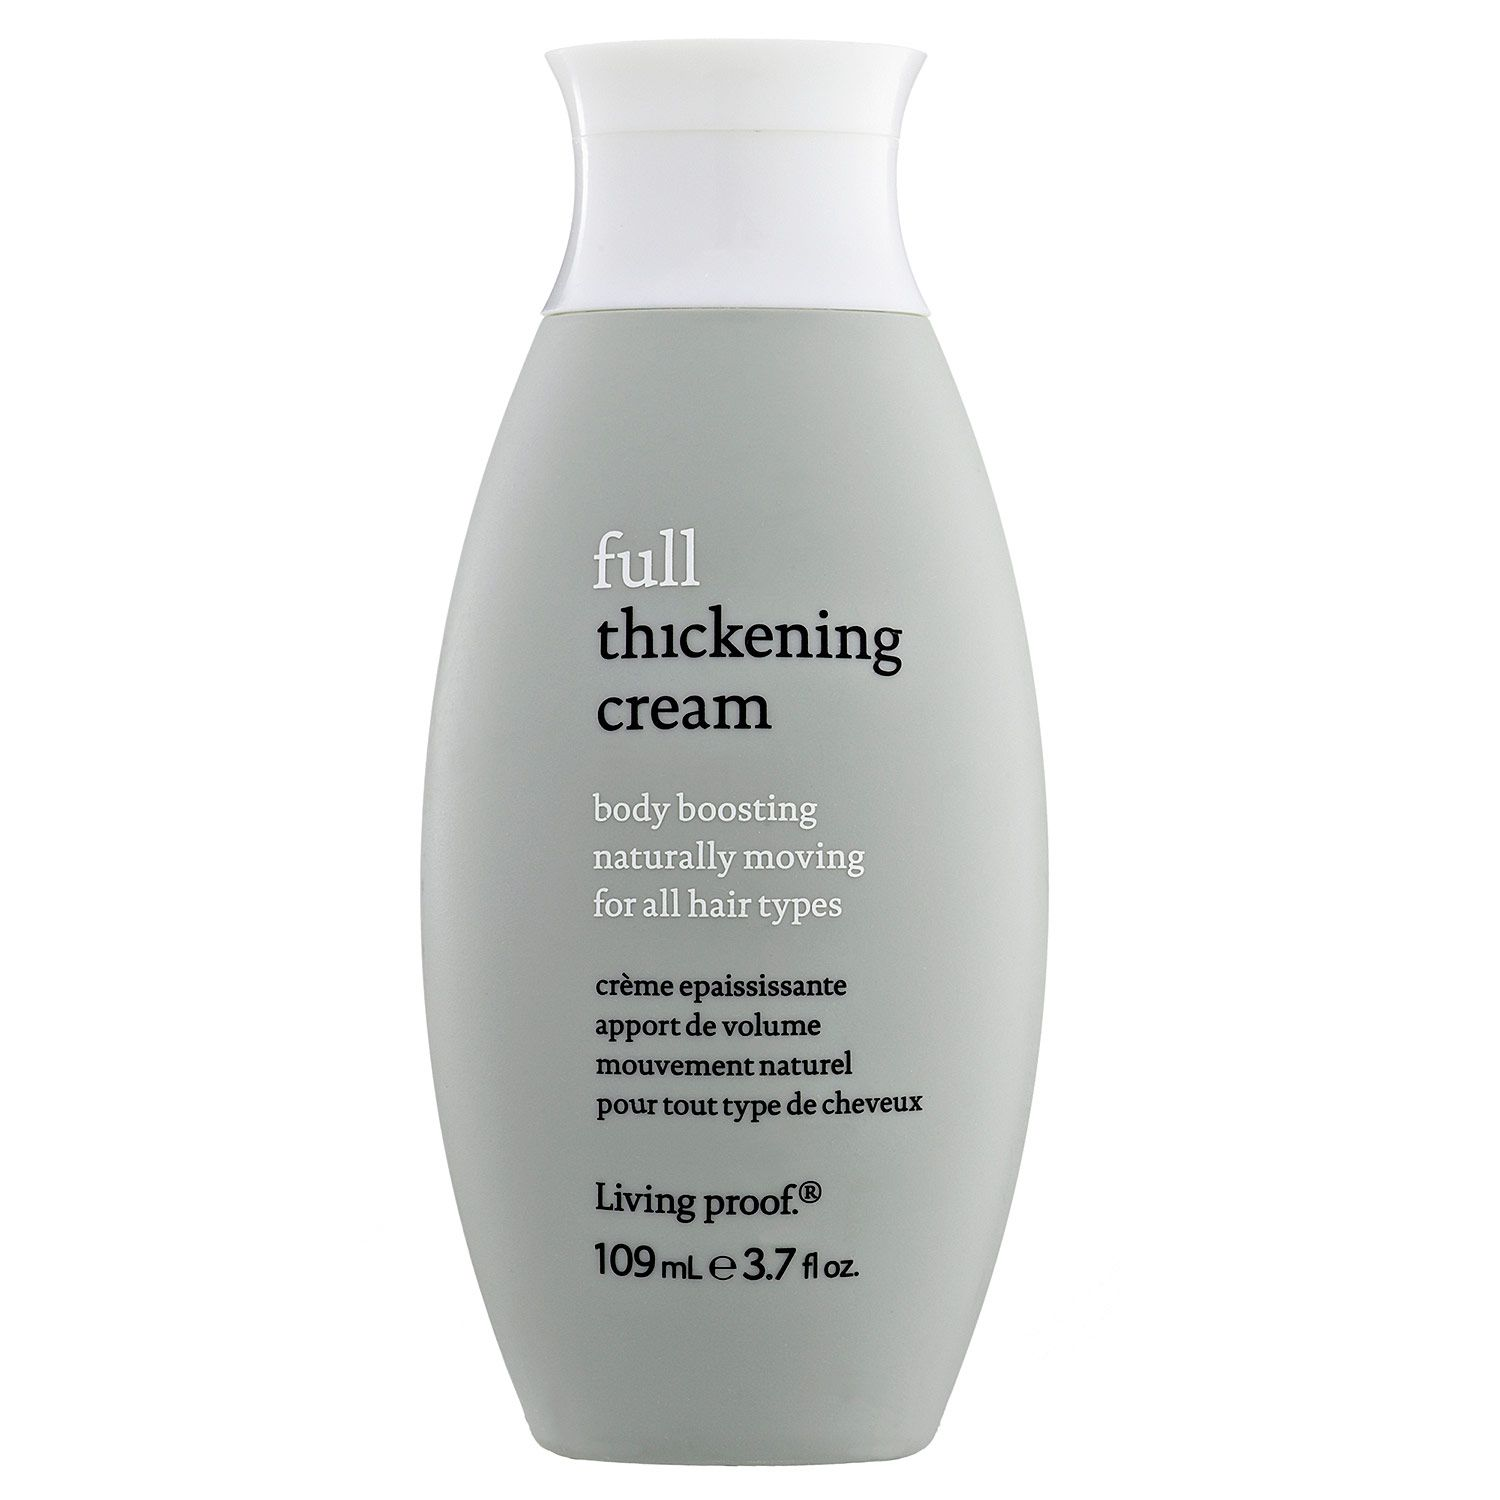 This cream helps my hair look bouncy and full without stiffness It